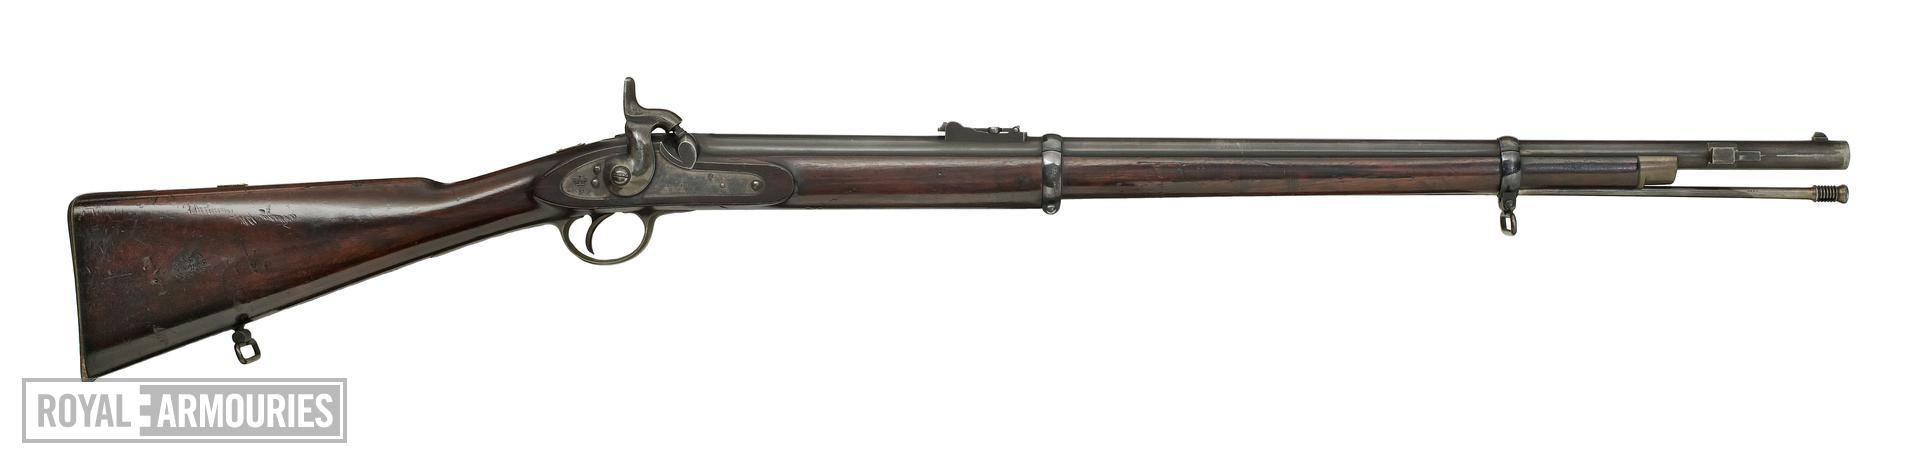 Percussion muzzle-loading military rifled carbine - Pattern1856 for the East India Company, sealed pattern